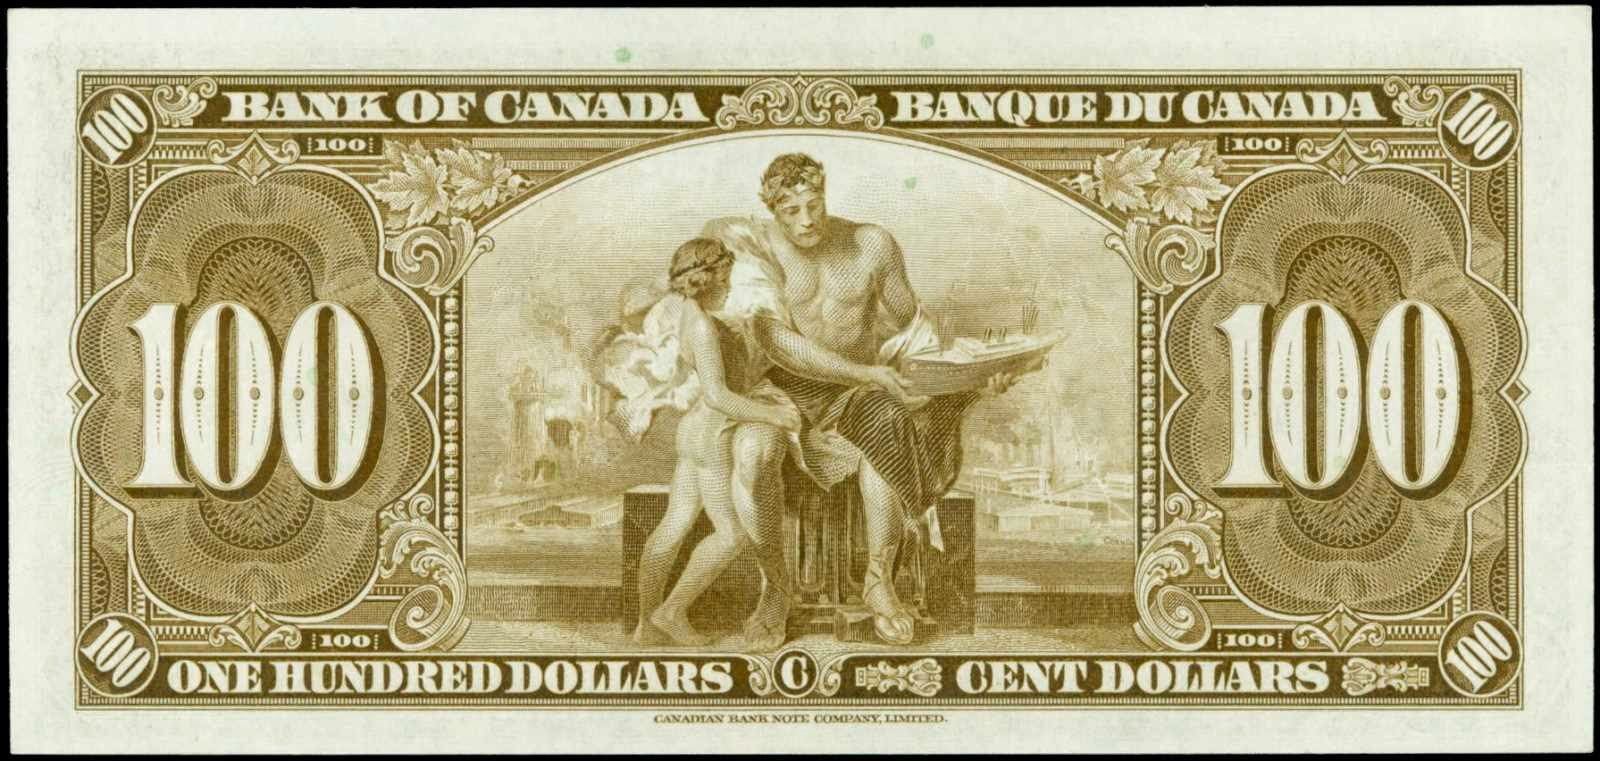 1937 100 Dollar Bill from The Bank of Canada